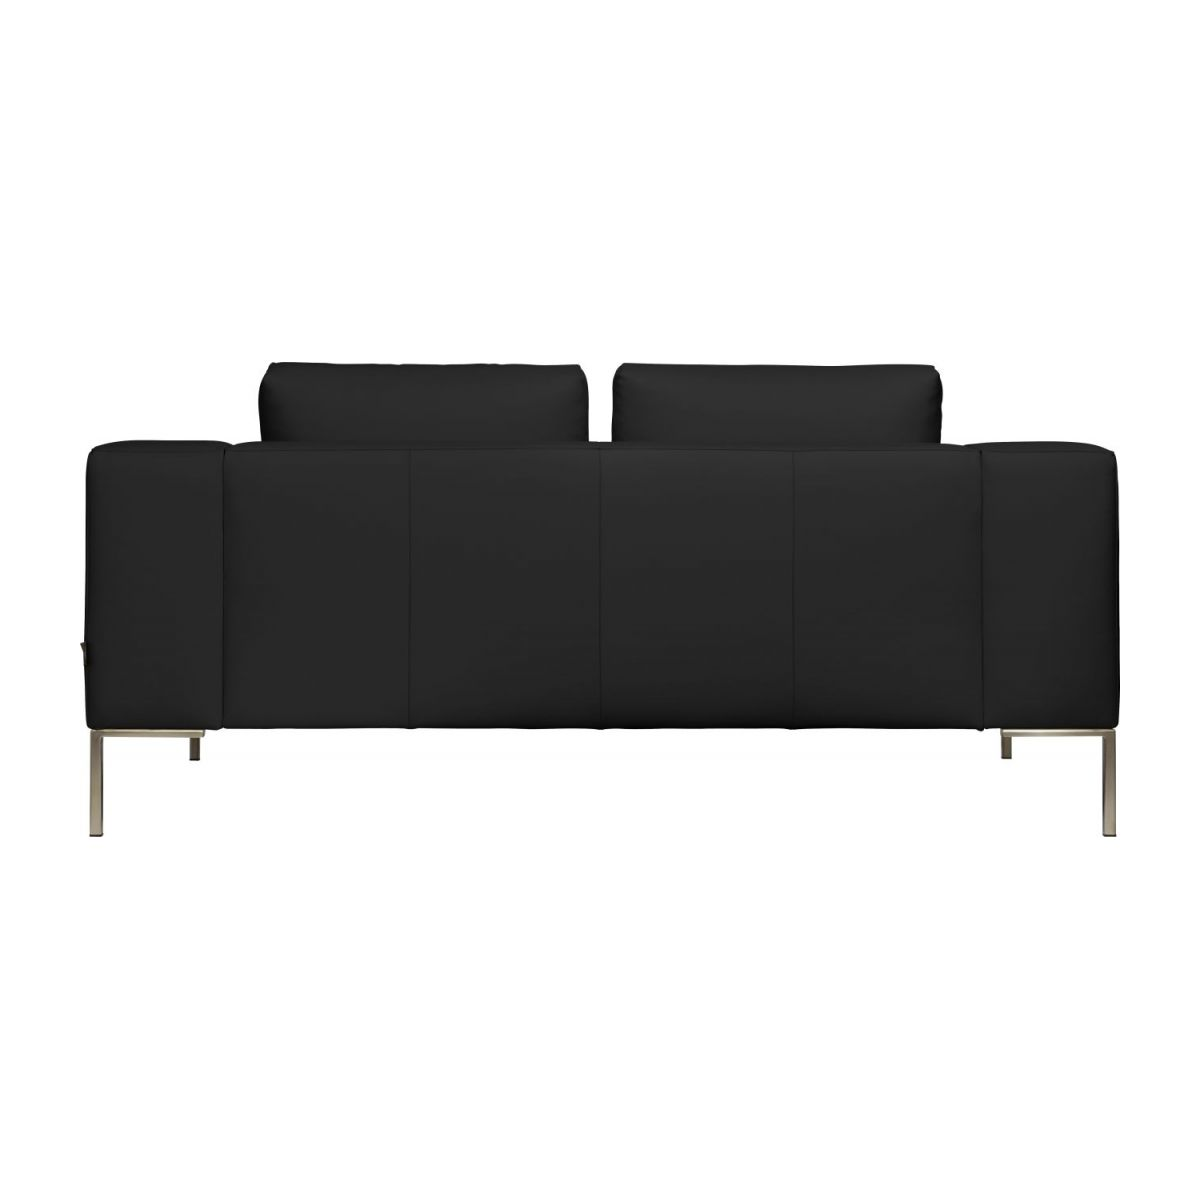 2 seater sofa in Eton veined leather, black n°4